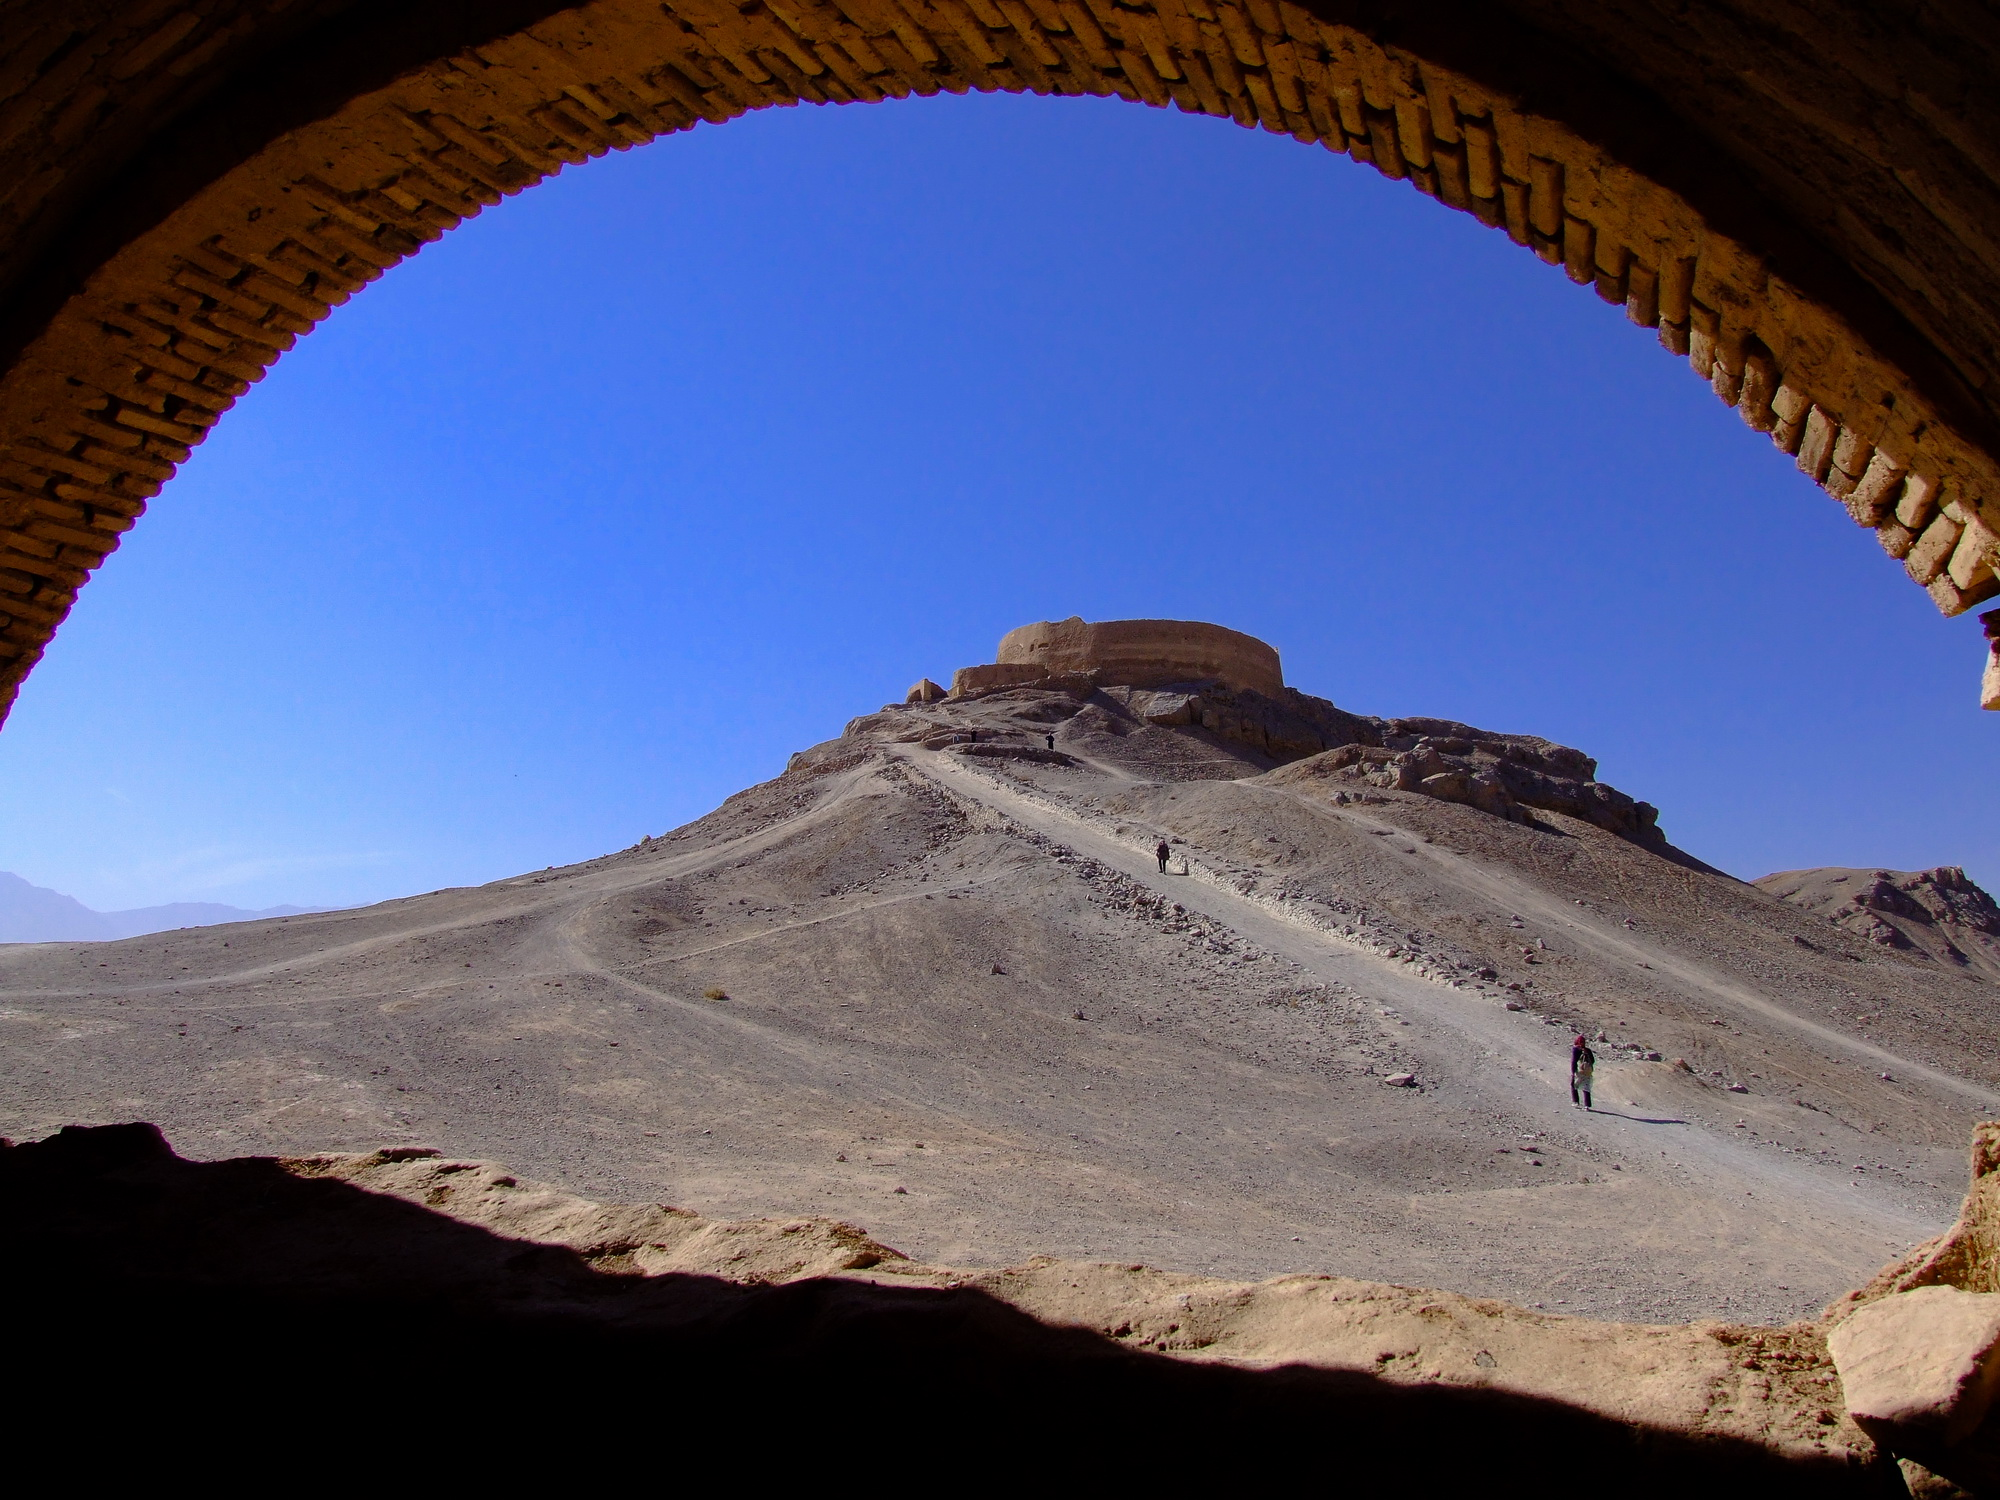 Zoroastrian tower of silence